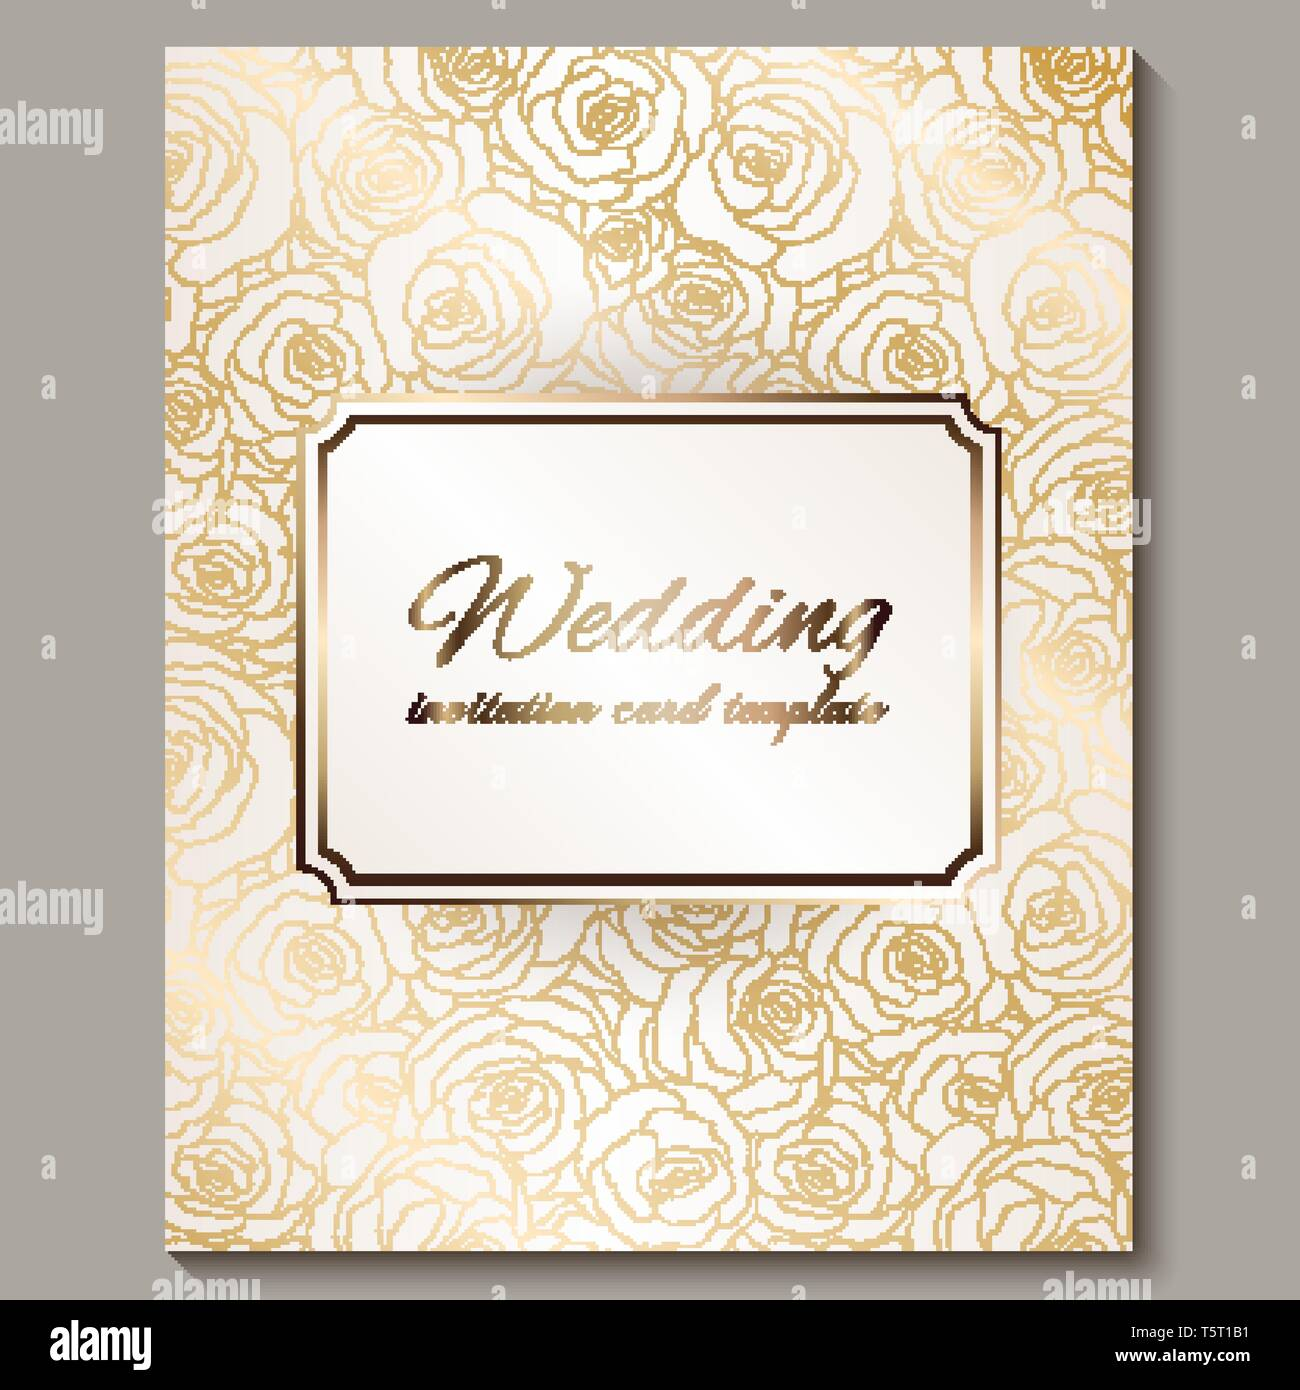 luxury gold vintage wedding invitation floral background with place for text lacy foliage made of roses with golden shiny gradient victorian wallpa stock vector image art alamy https www alamy com luxury gold vintage wedding invitation floral background with place for text lacy foliage made of roses with golden shiny gradient victorian wallpa image244546373 html